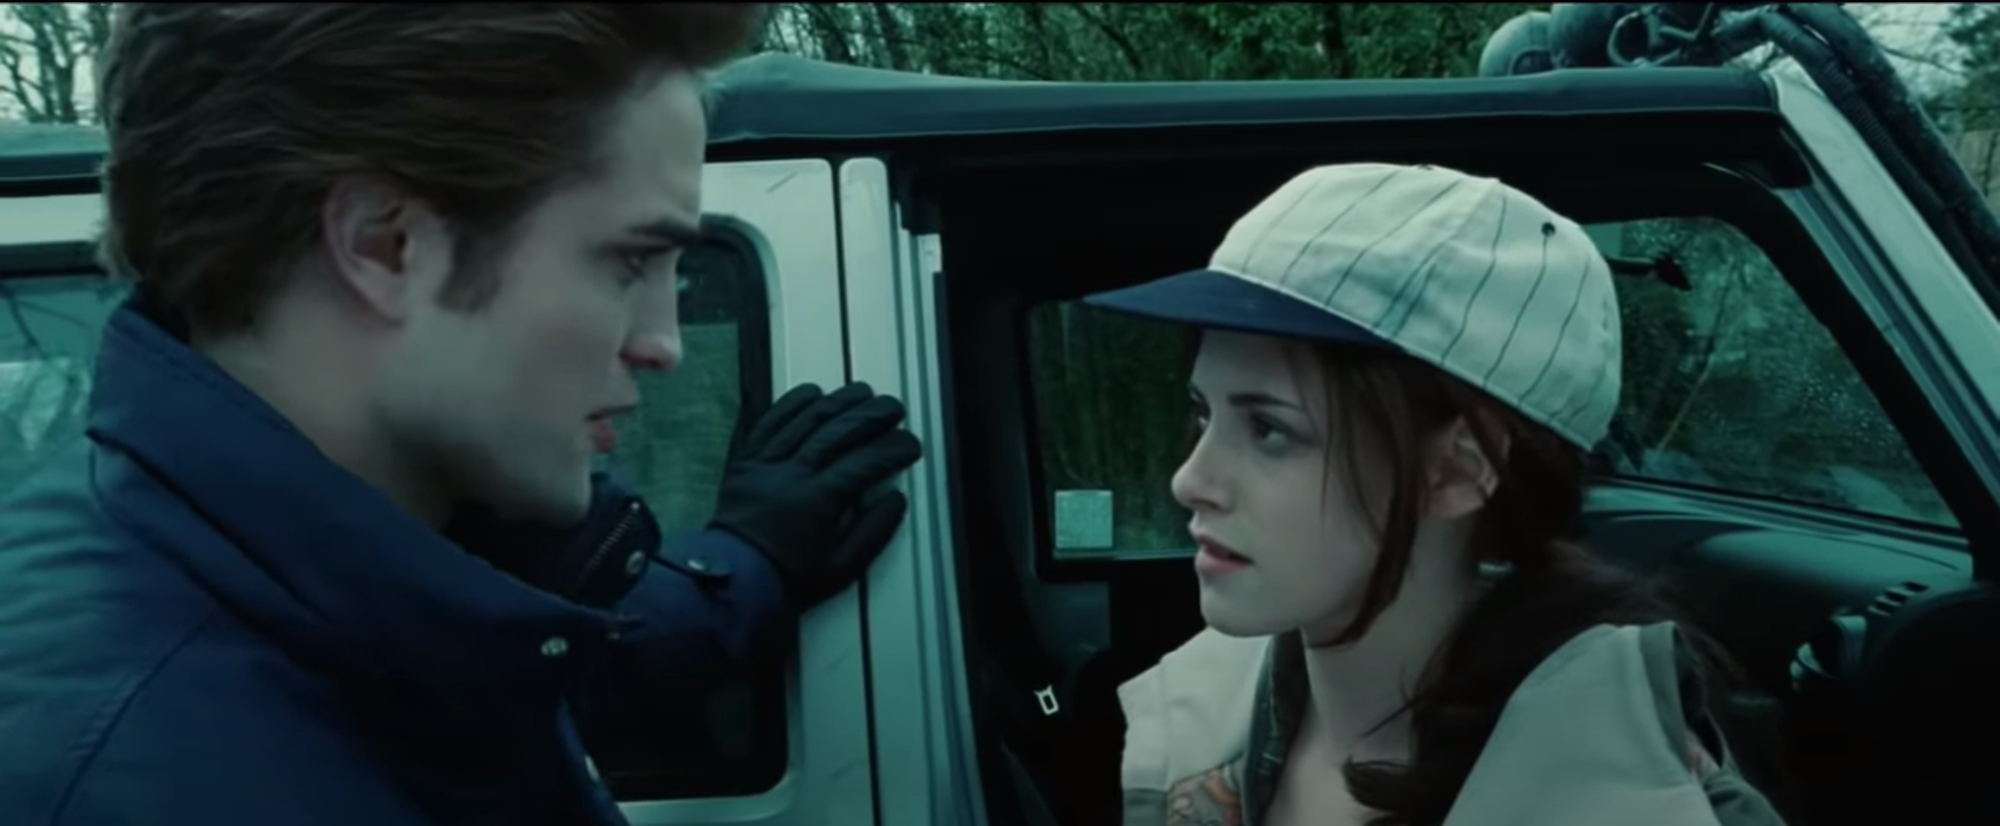 Edward Cullen (Robert Pattinson) and Bella Swan (Kristen Stewart) right before the Cullens have their baseball game in 'Twilight.'